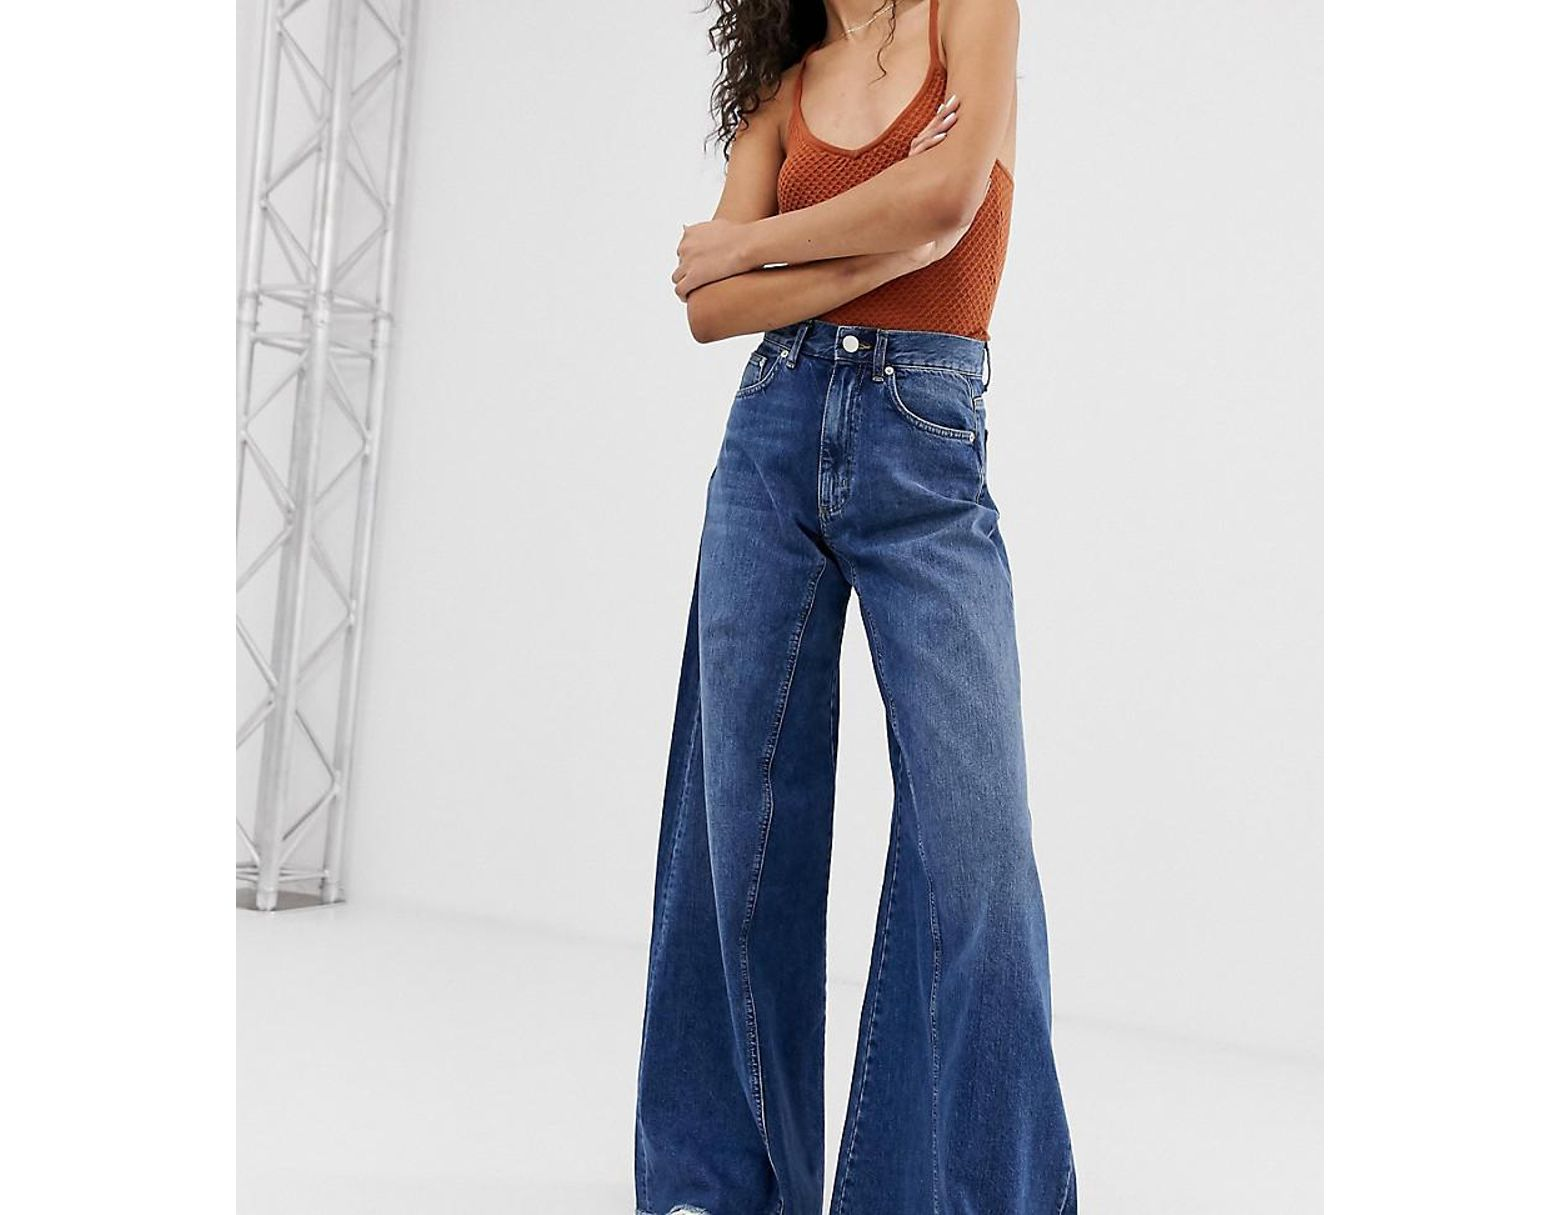 b9065f17772e6a ASOS. Women's Blue Asos Design Tall Wide Leg Jeans With Inverted Godet  Inserts In Dark Stone Wash